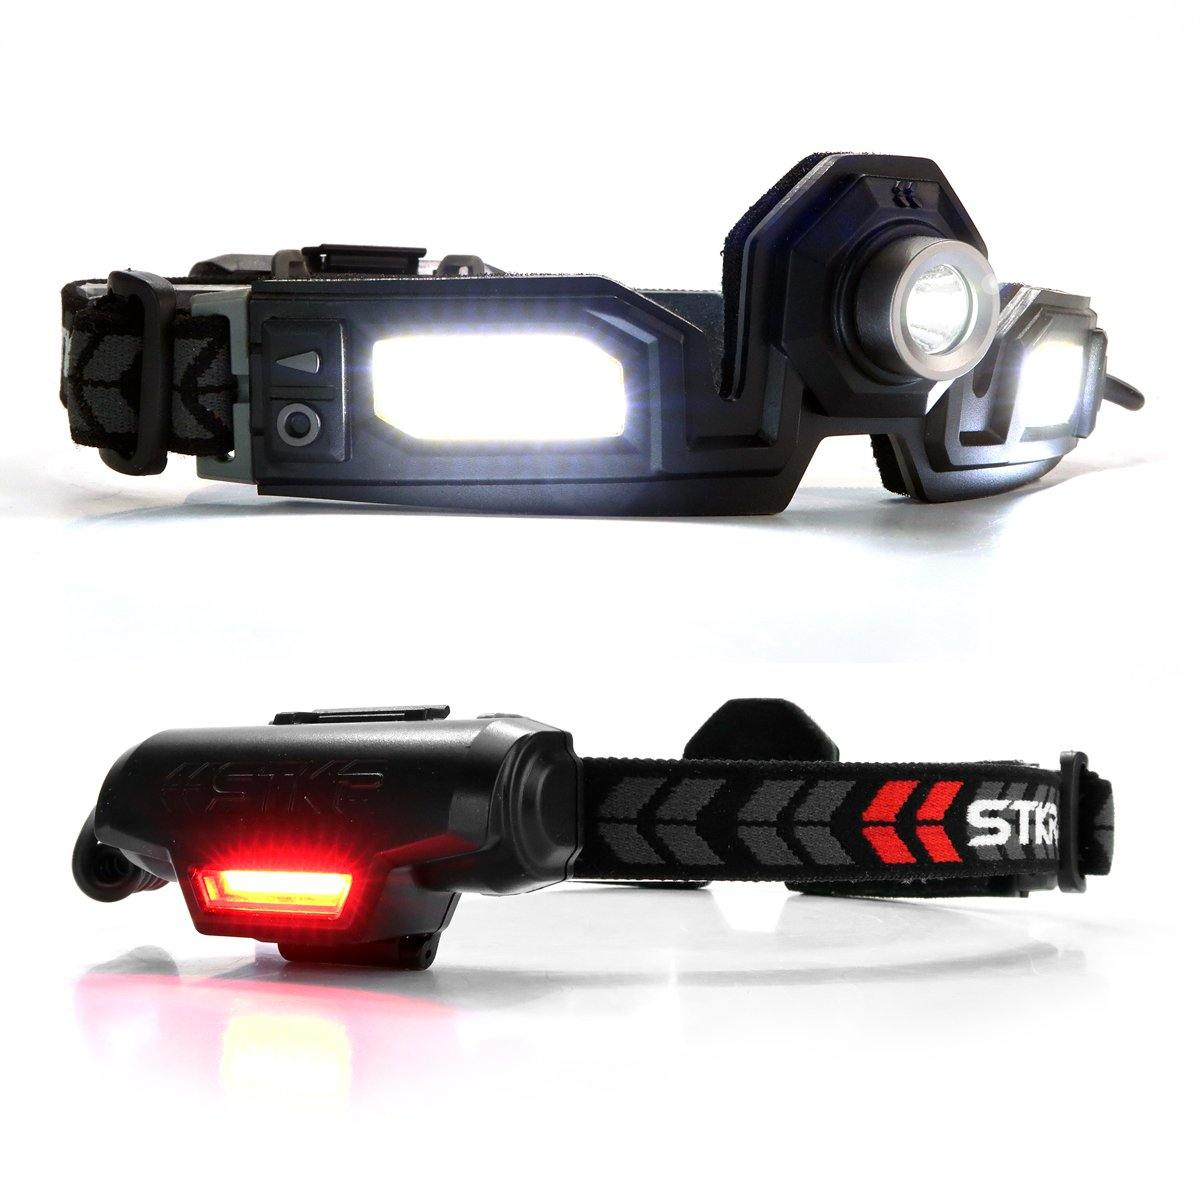 FLEXIT Headlamp Pro - Halo Lighting and Rear Hazard Light by STKR Concepts